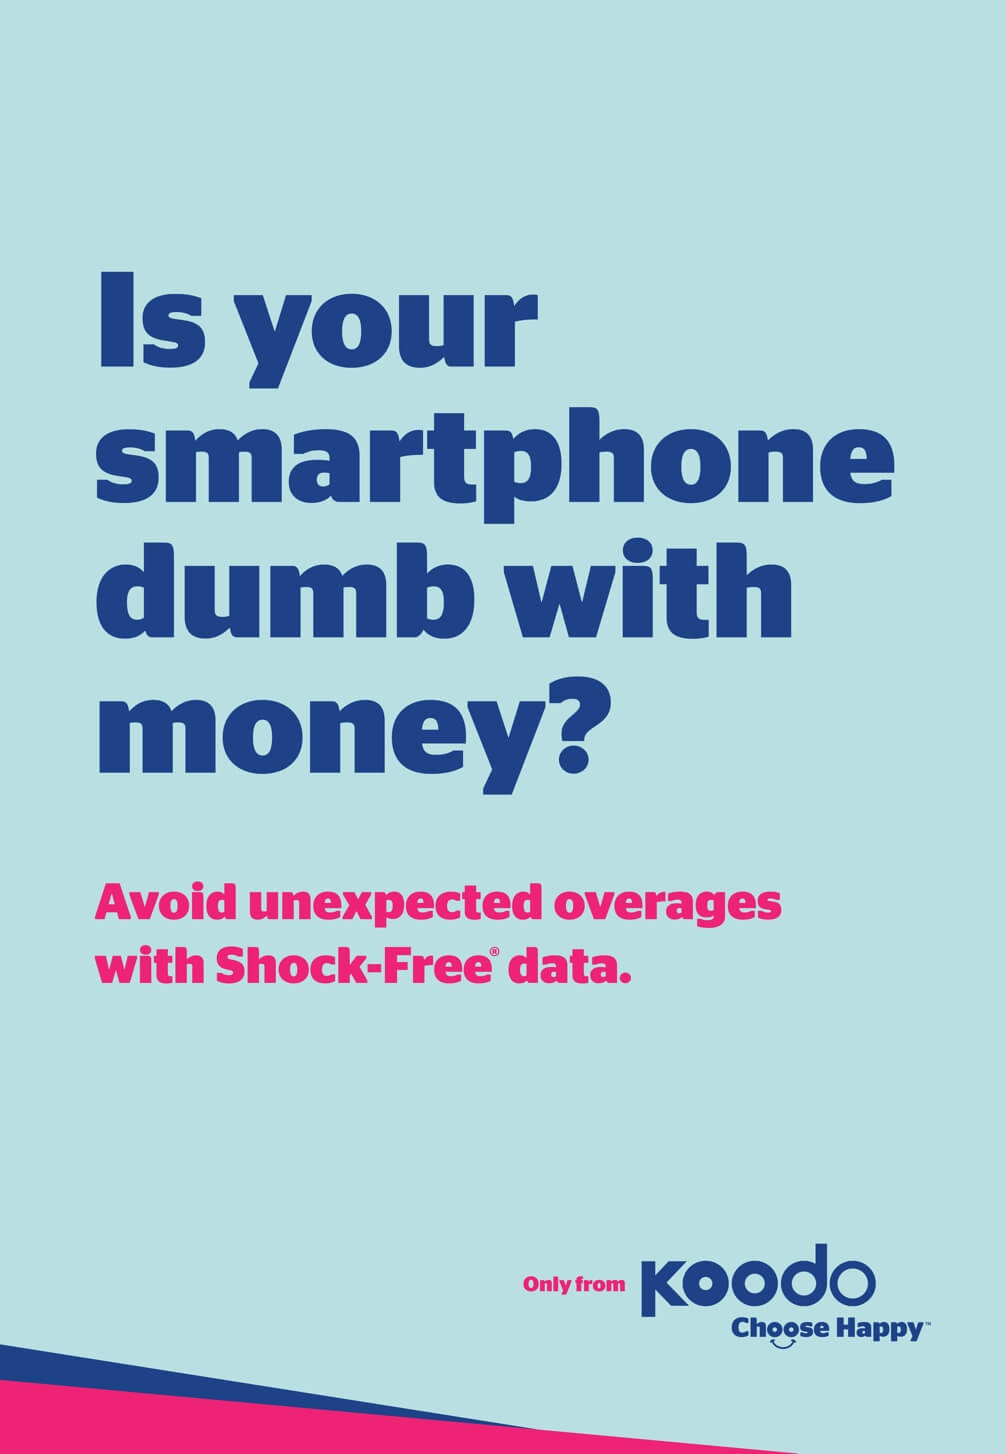 Is your smartphone dumb with money?